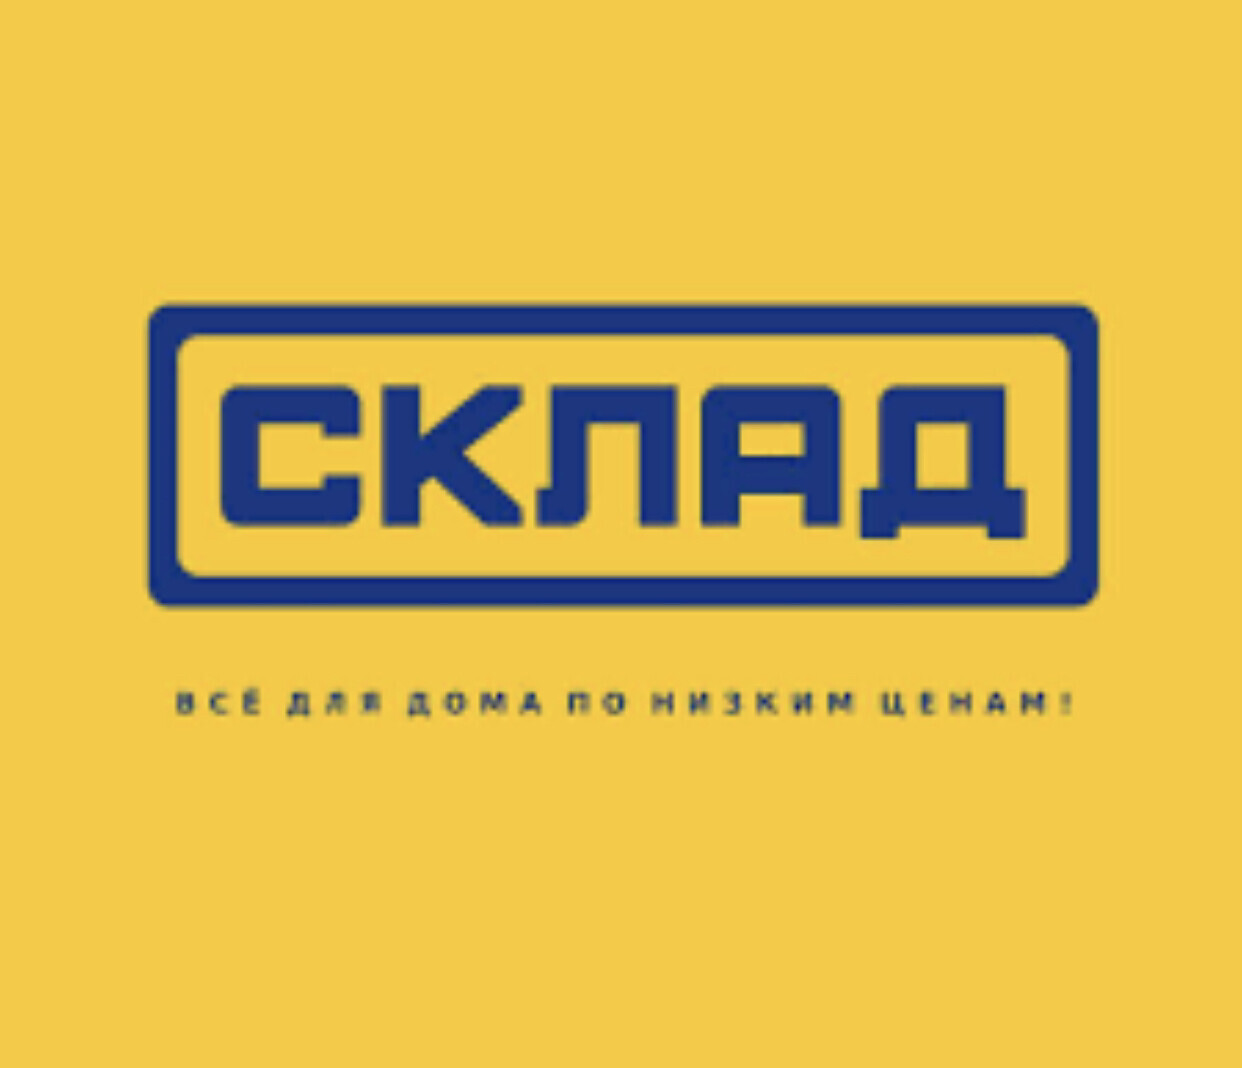 Paneli.kg - business profile of the company on lalafo.kg in Кыргызстан